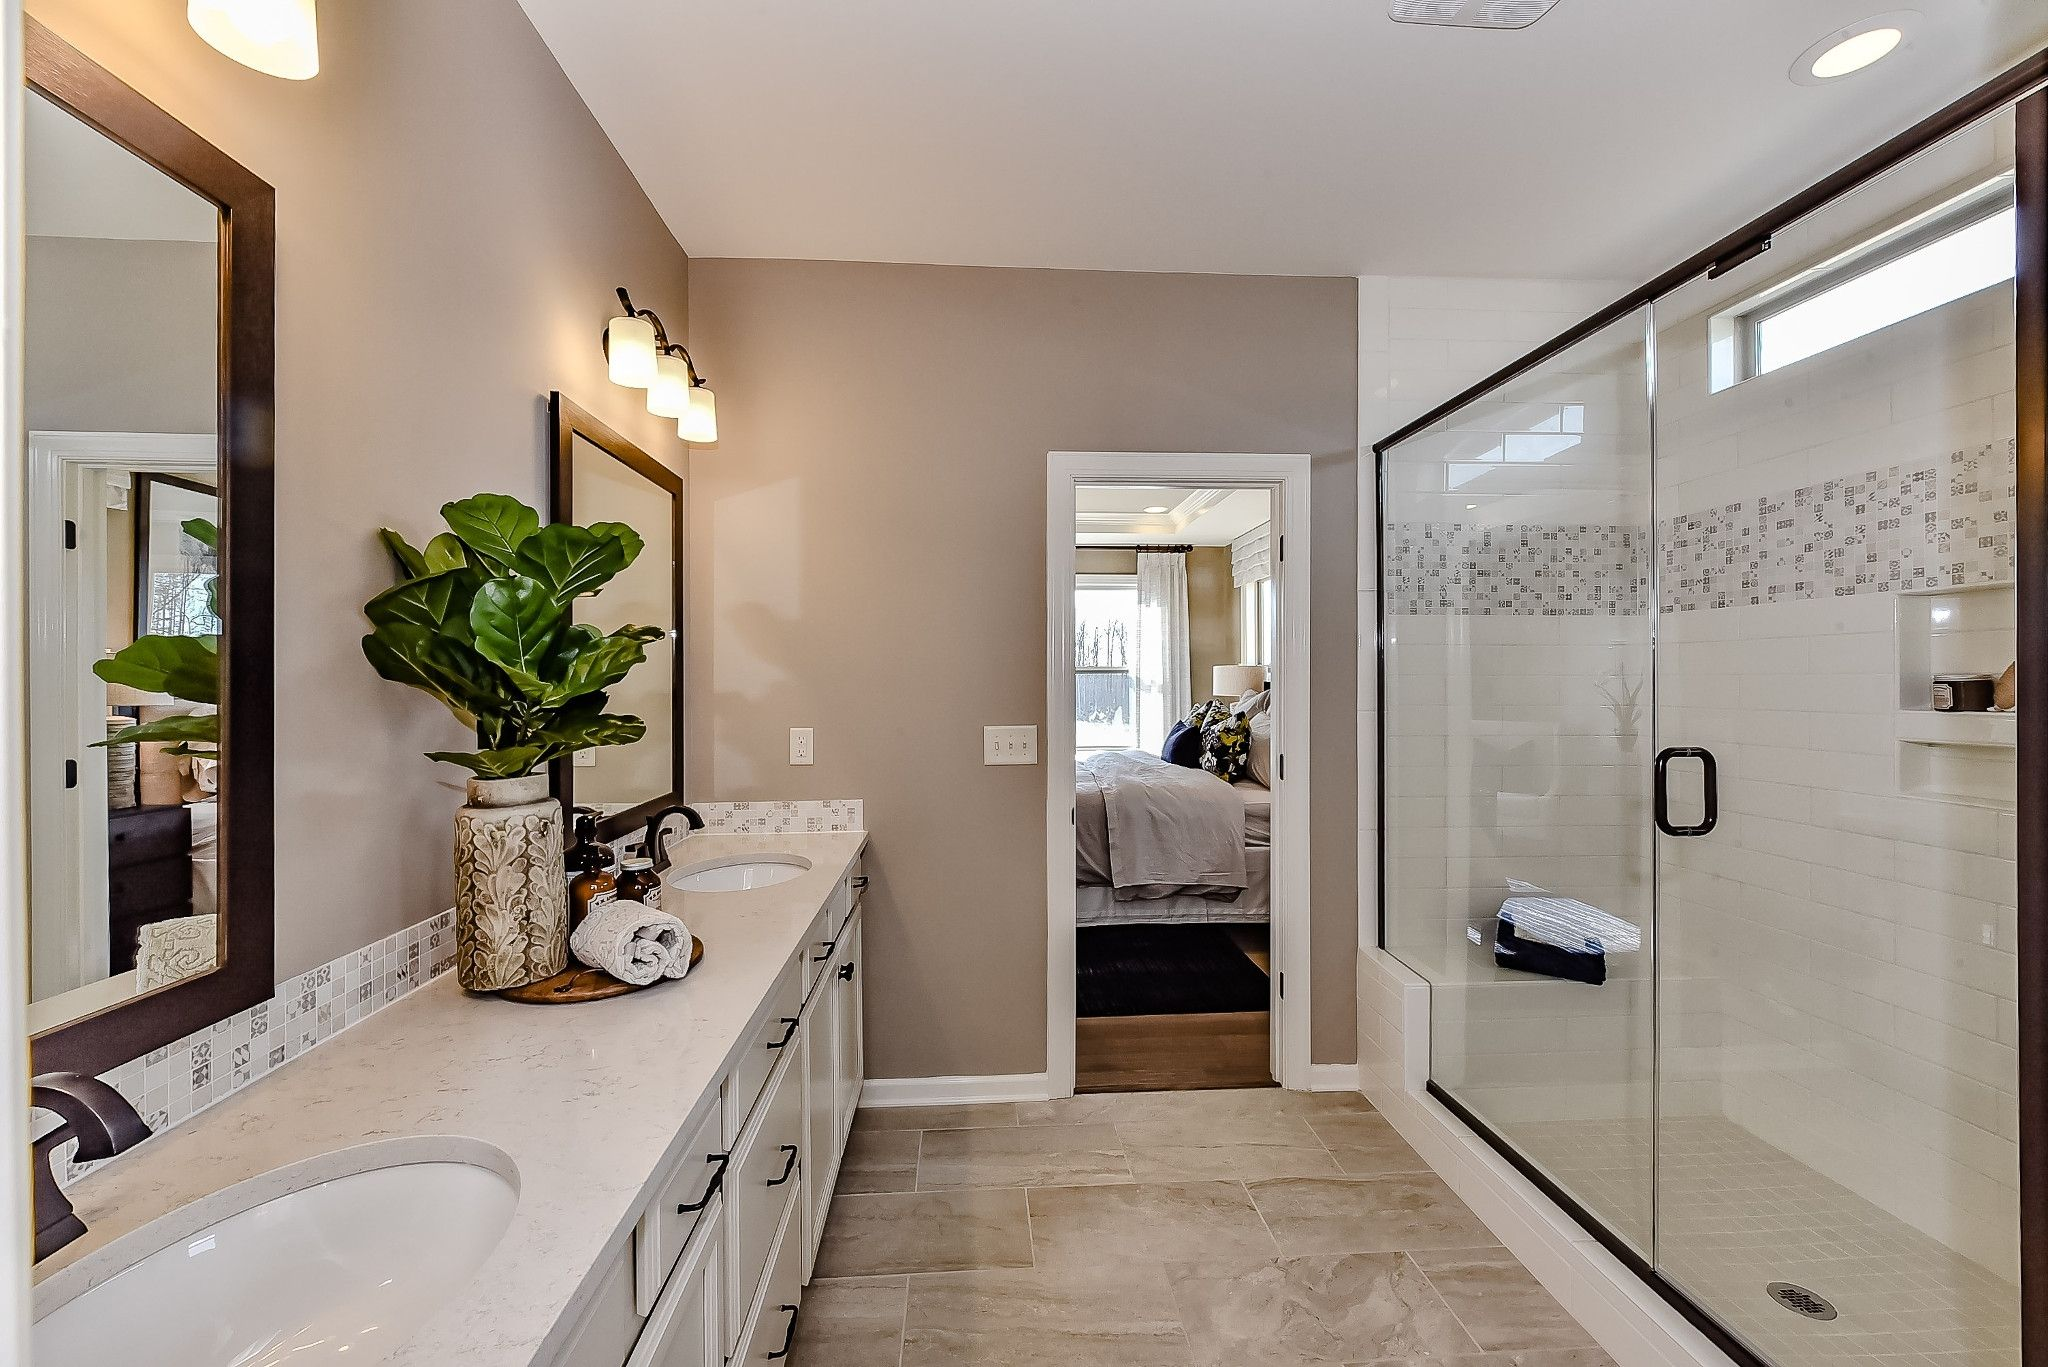 Bathroom featured in the Everett By Shea Homes in Charlotte, NC